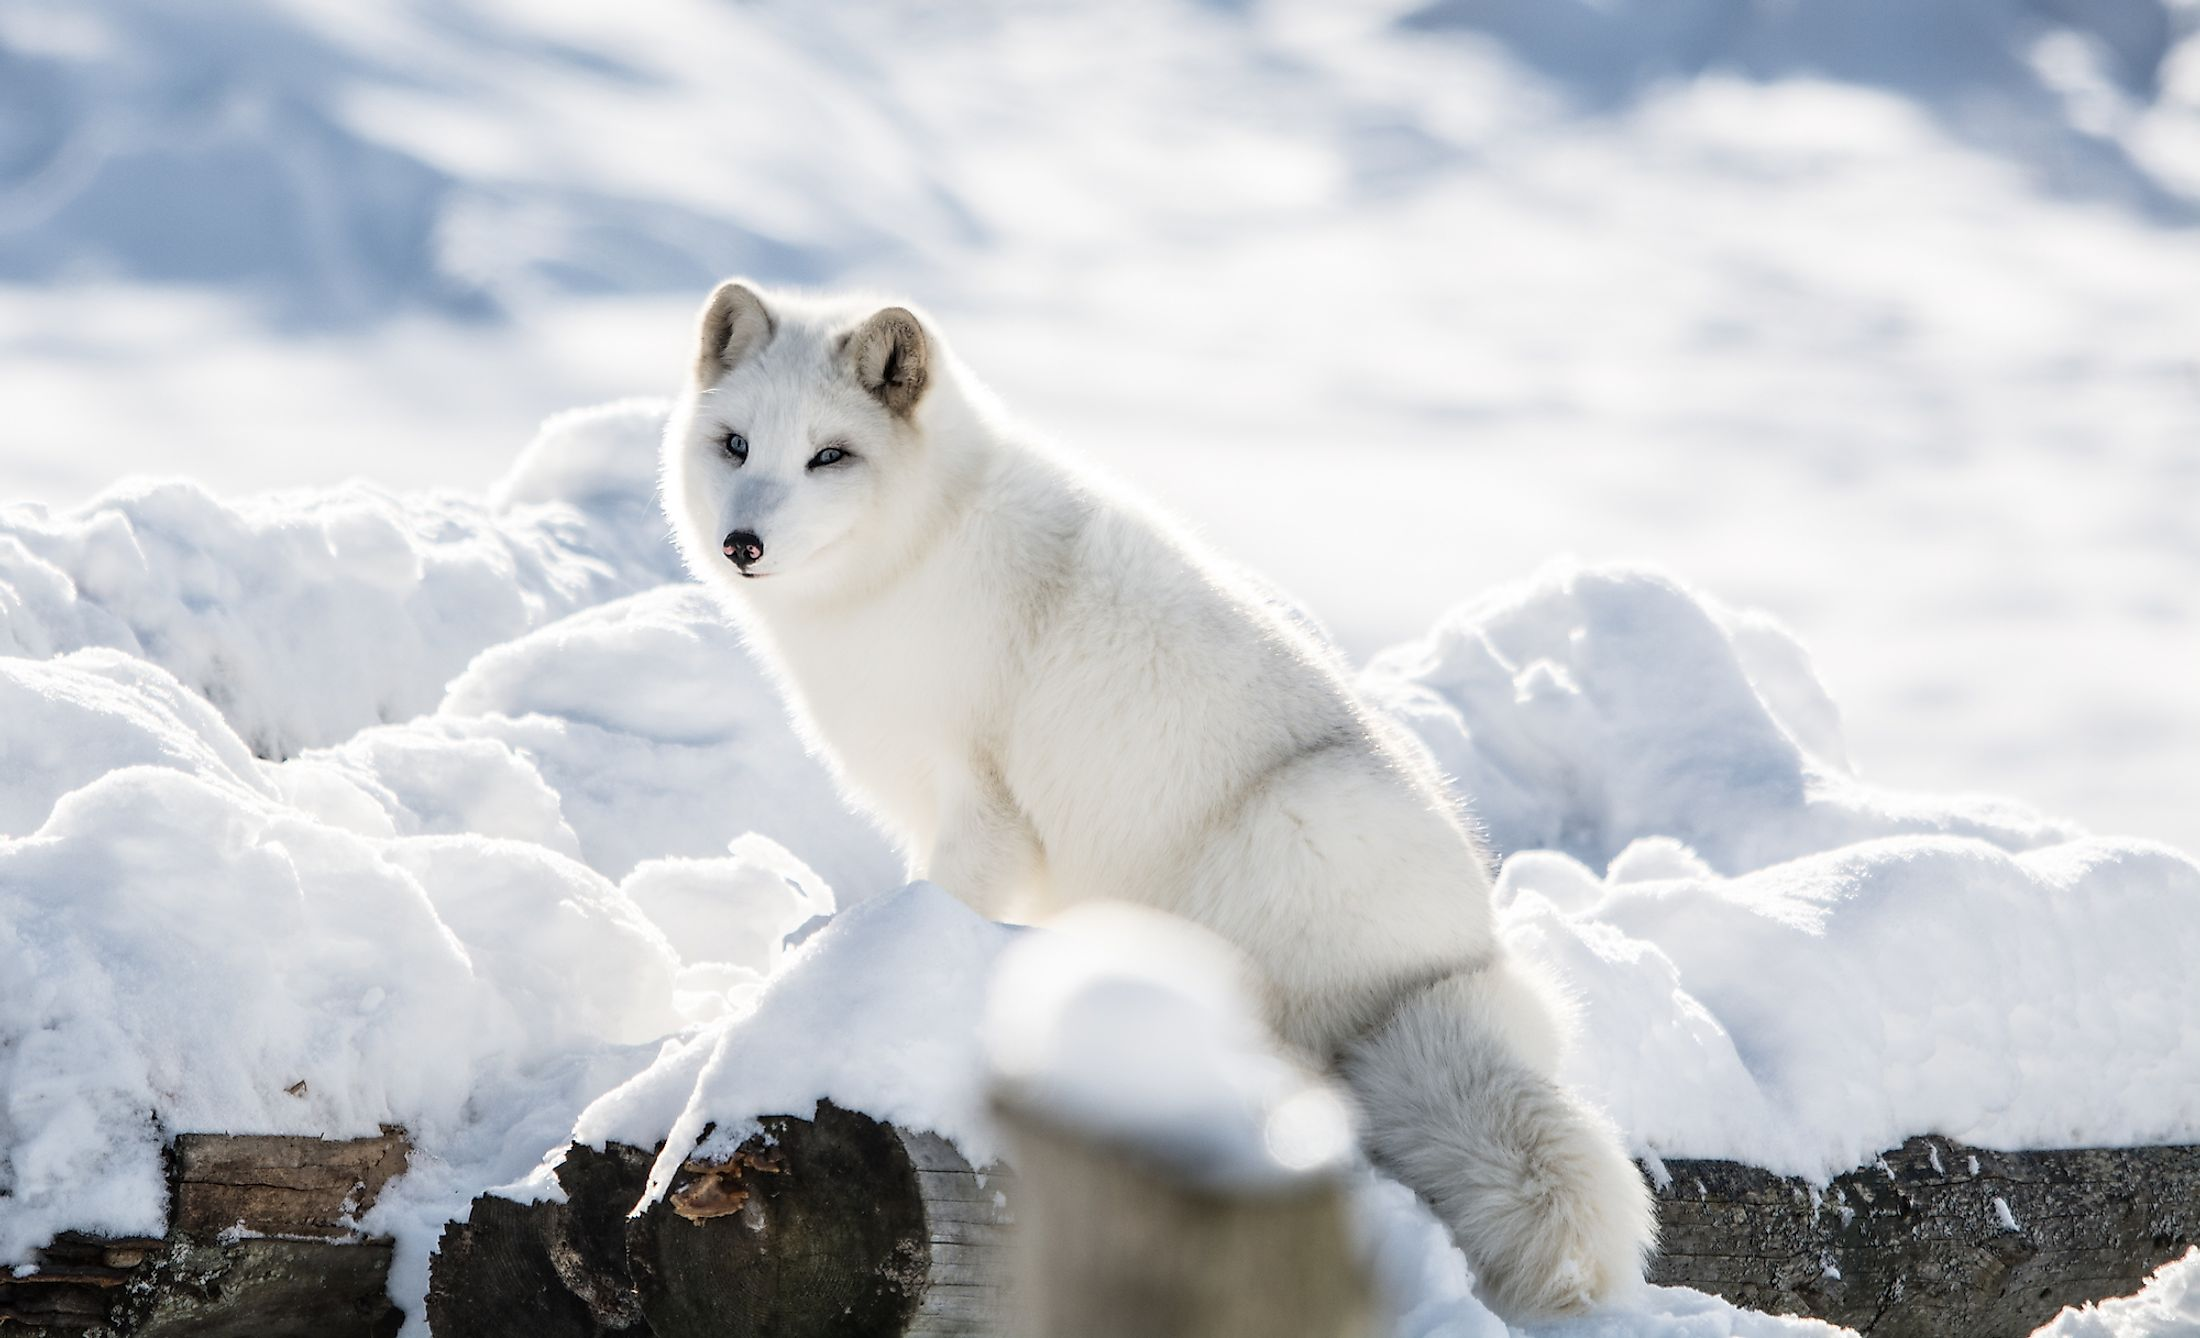 Arctic Fox on a Hill at Omega Park, Montebello, Quebec, Canada. Image credit: Fitawoman/Shutterstock.com